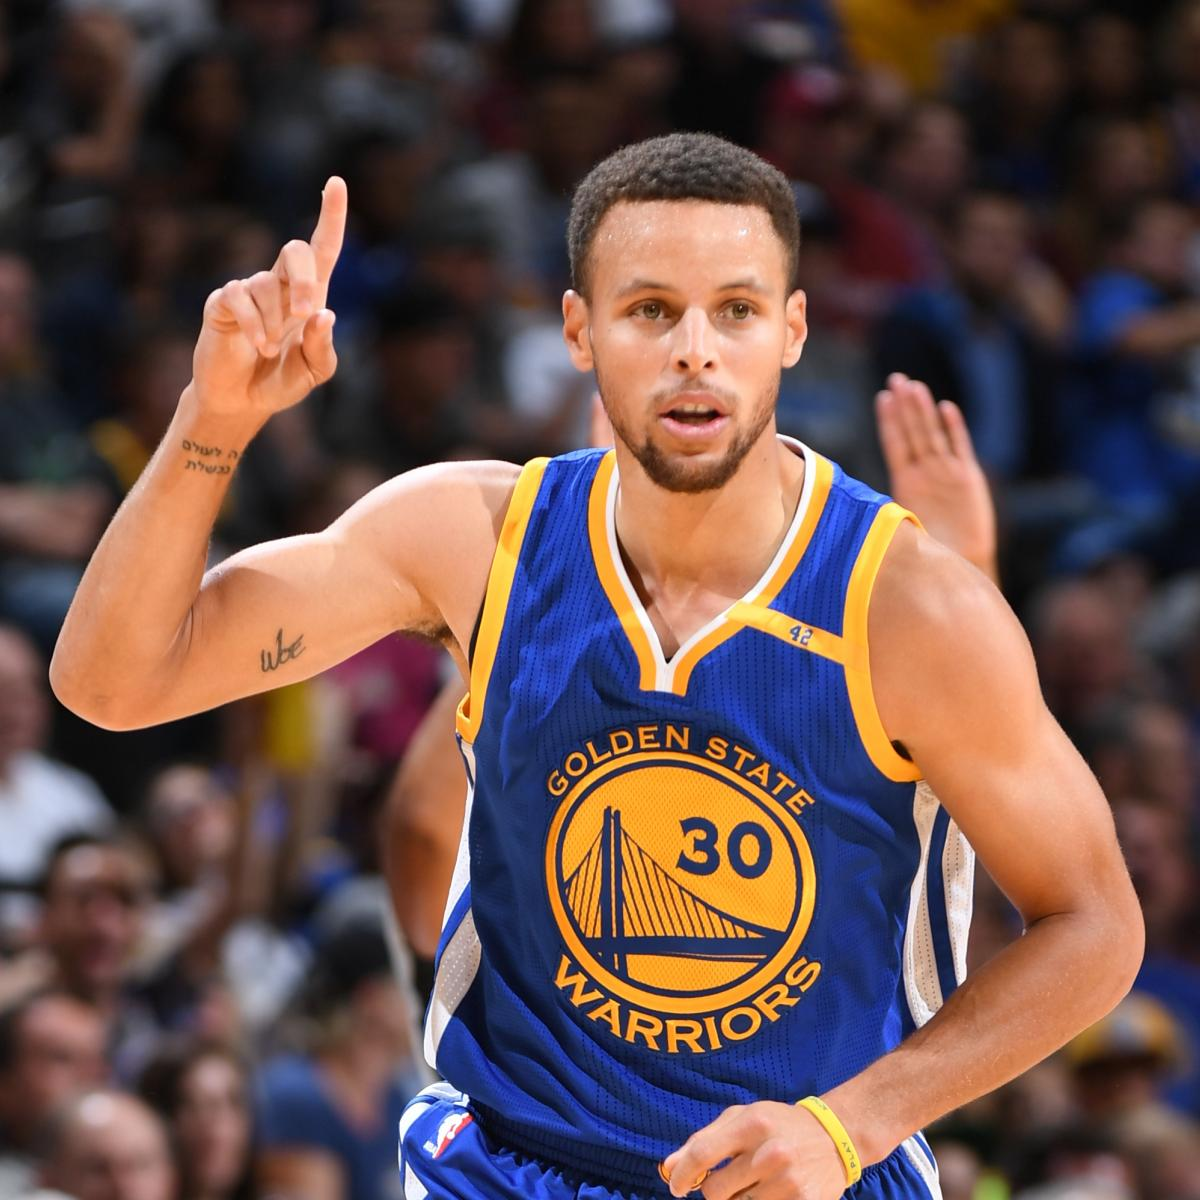 Warriors Come Out To Play Bleacher Report: Golden State Warriors Vs. Toronto Raptors: Live Score